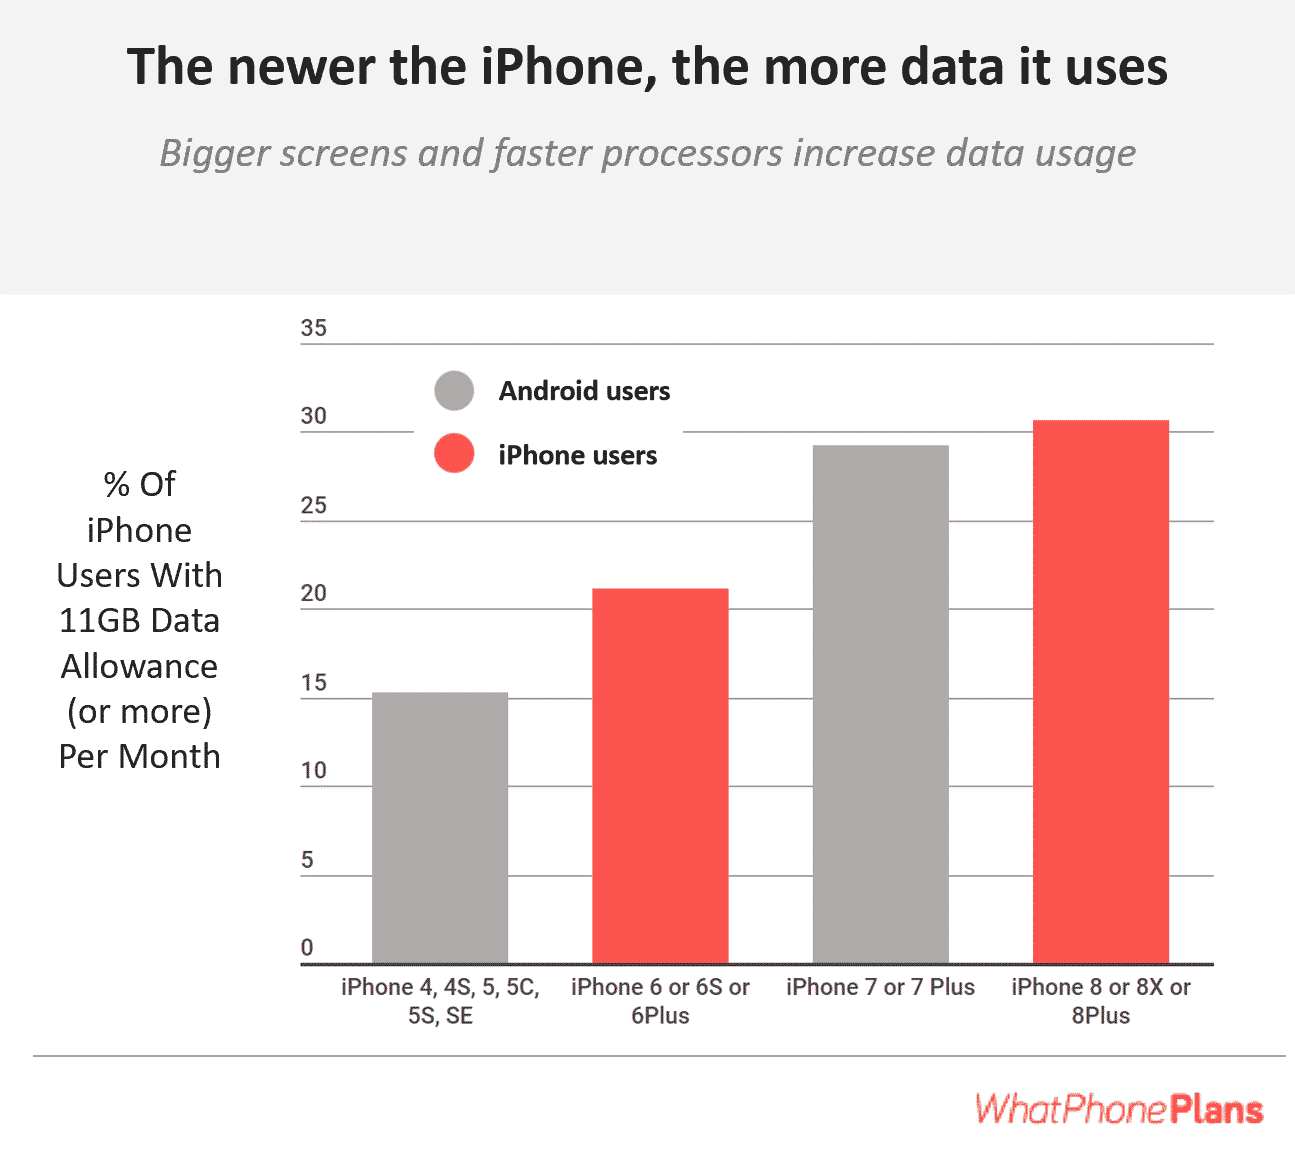 The newer the iPhone, the more mobile data it will consume each month.